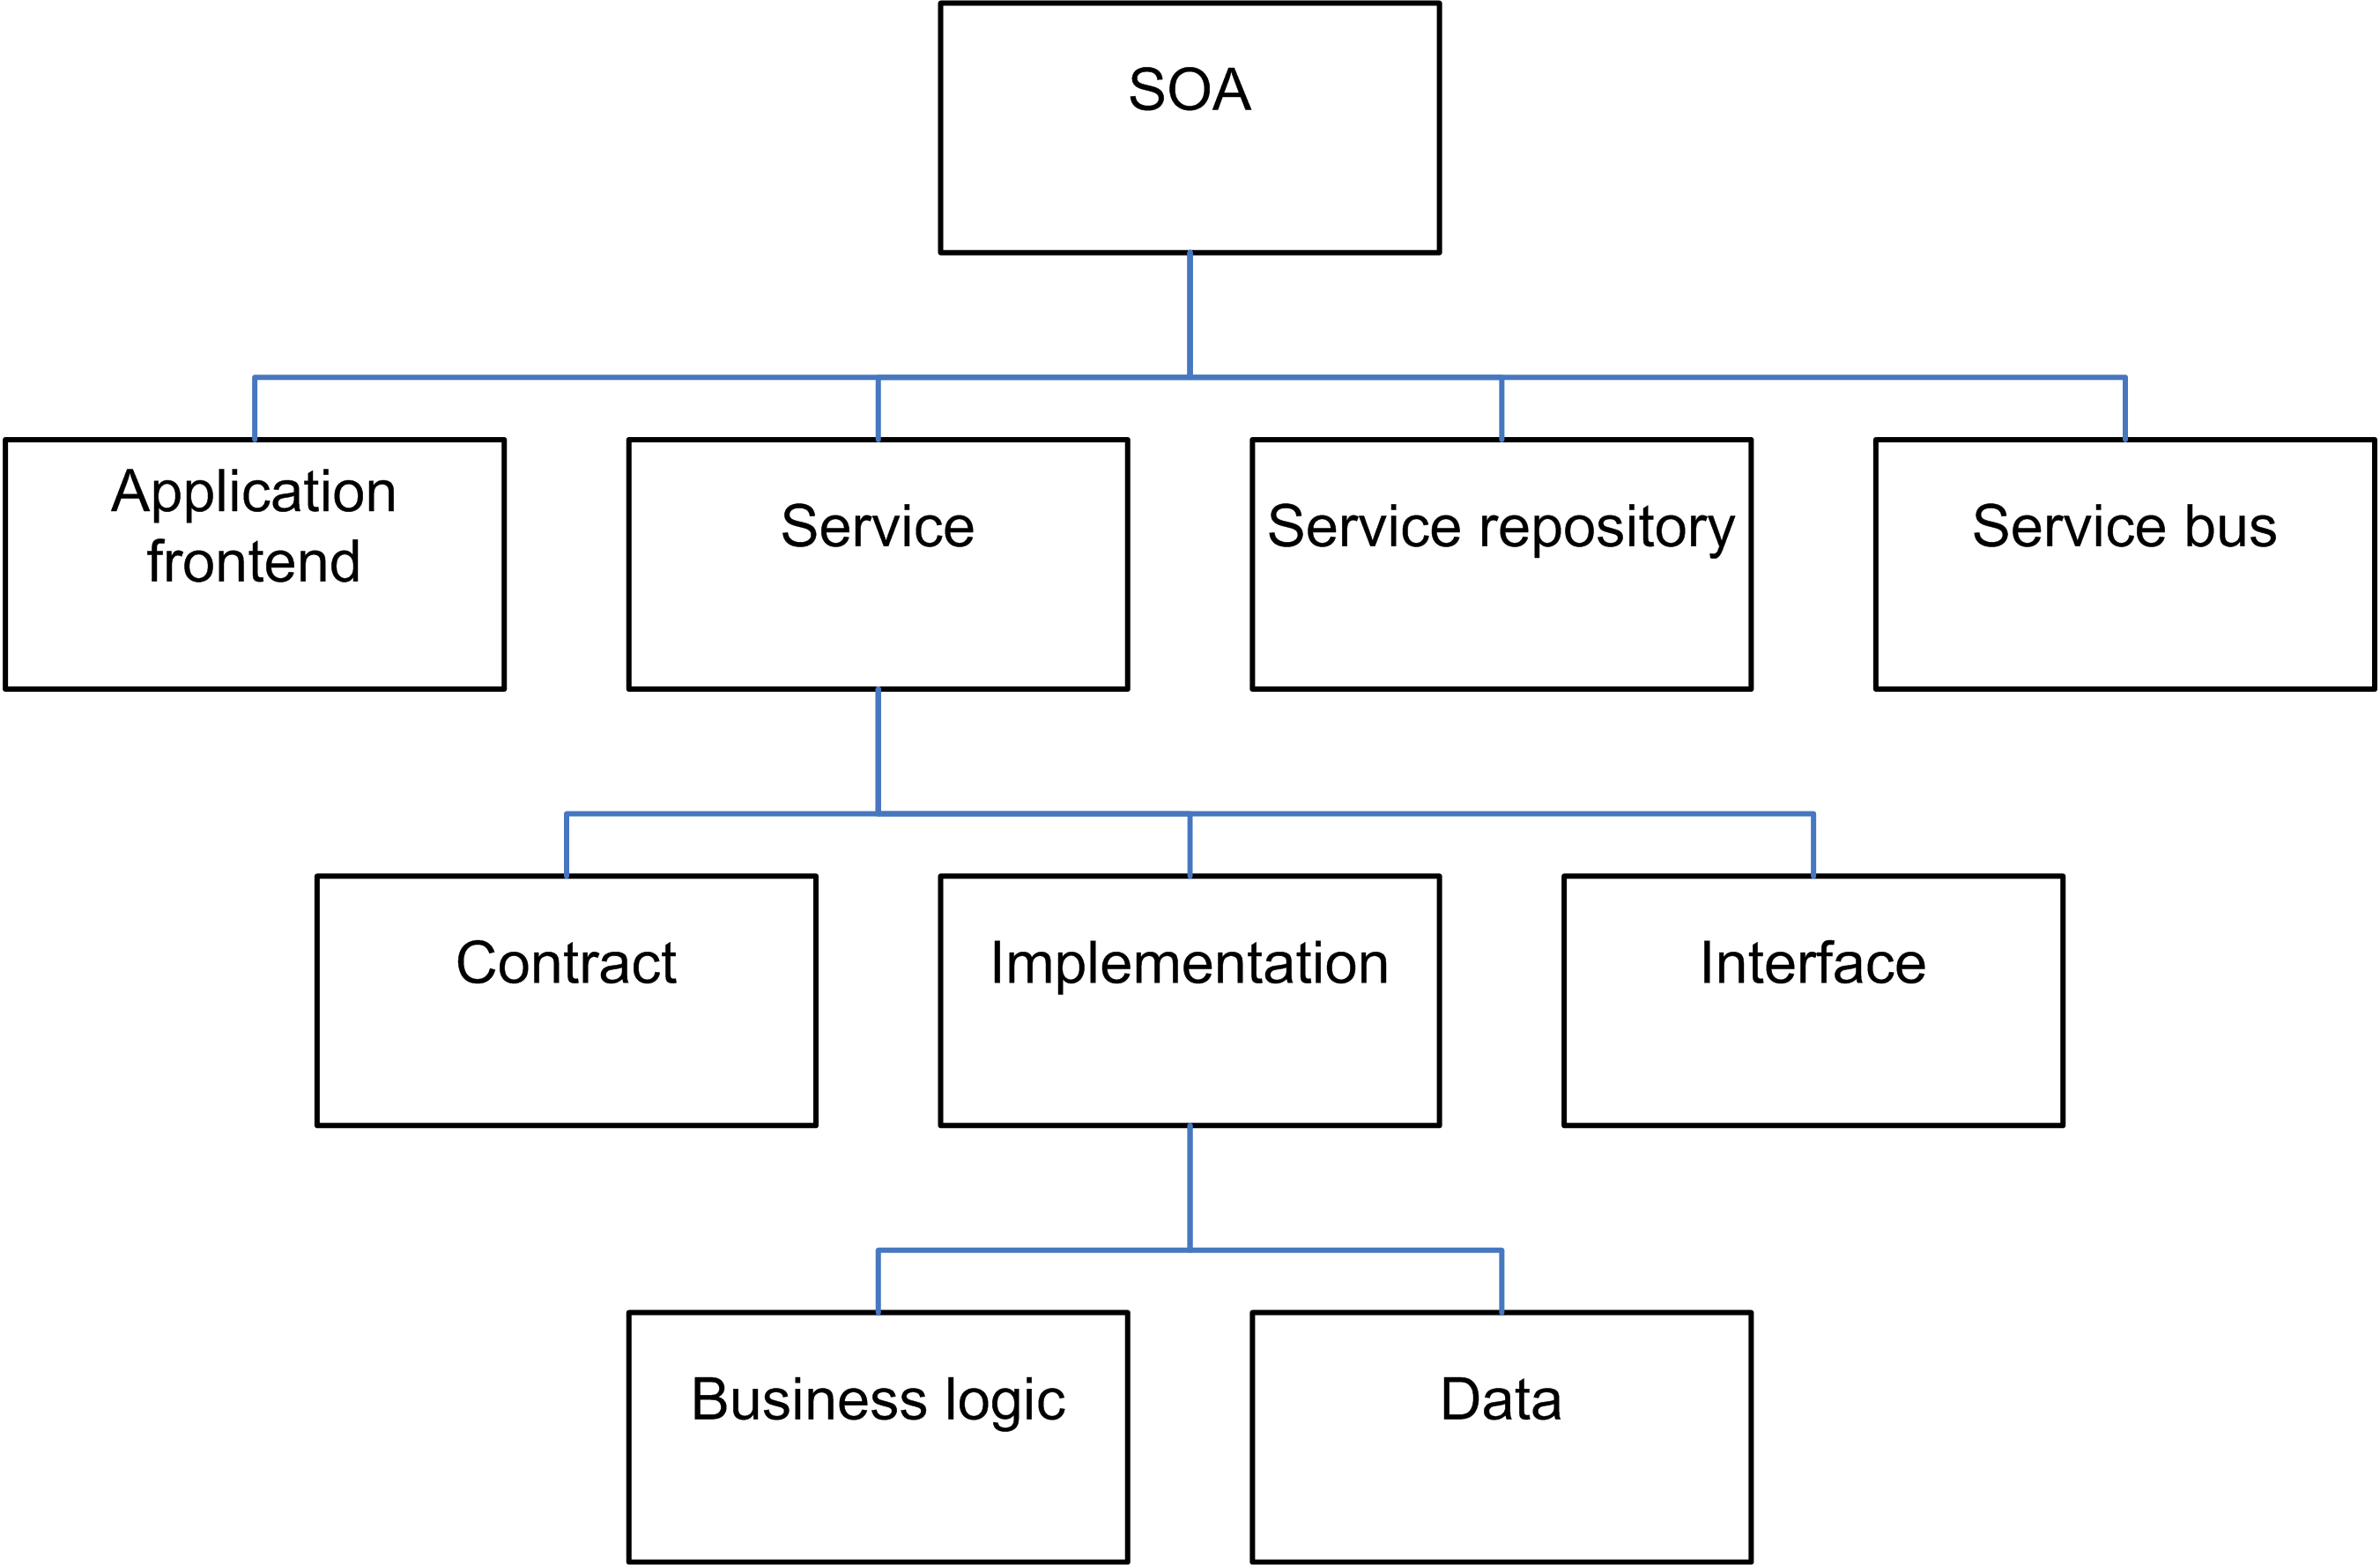 File:SOA Elements.png